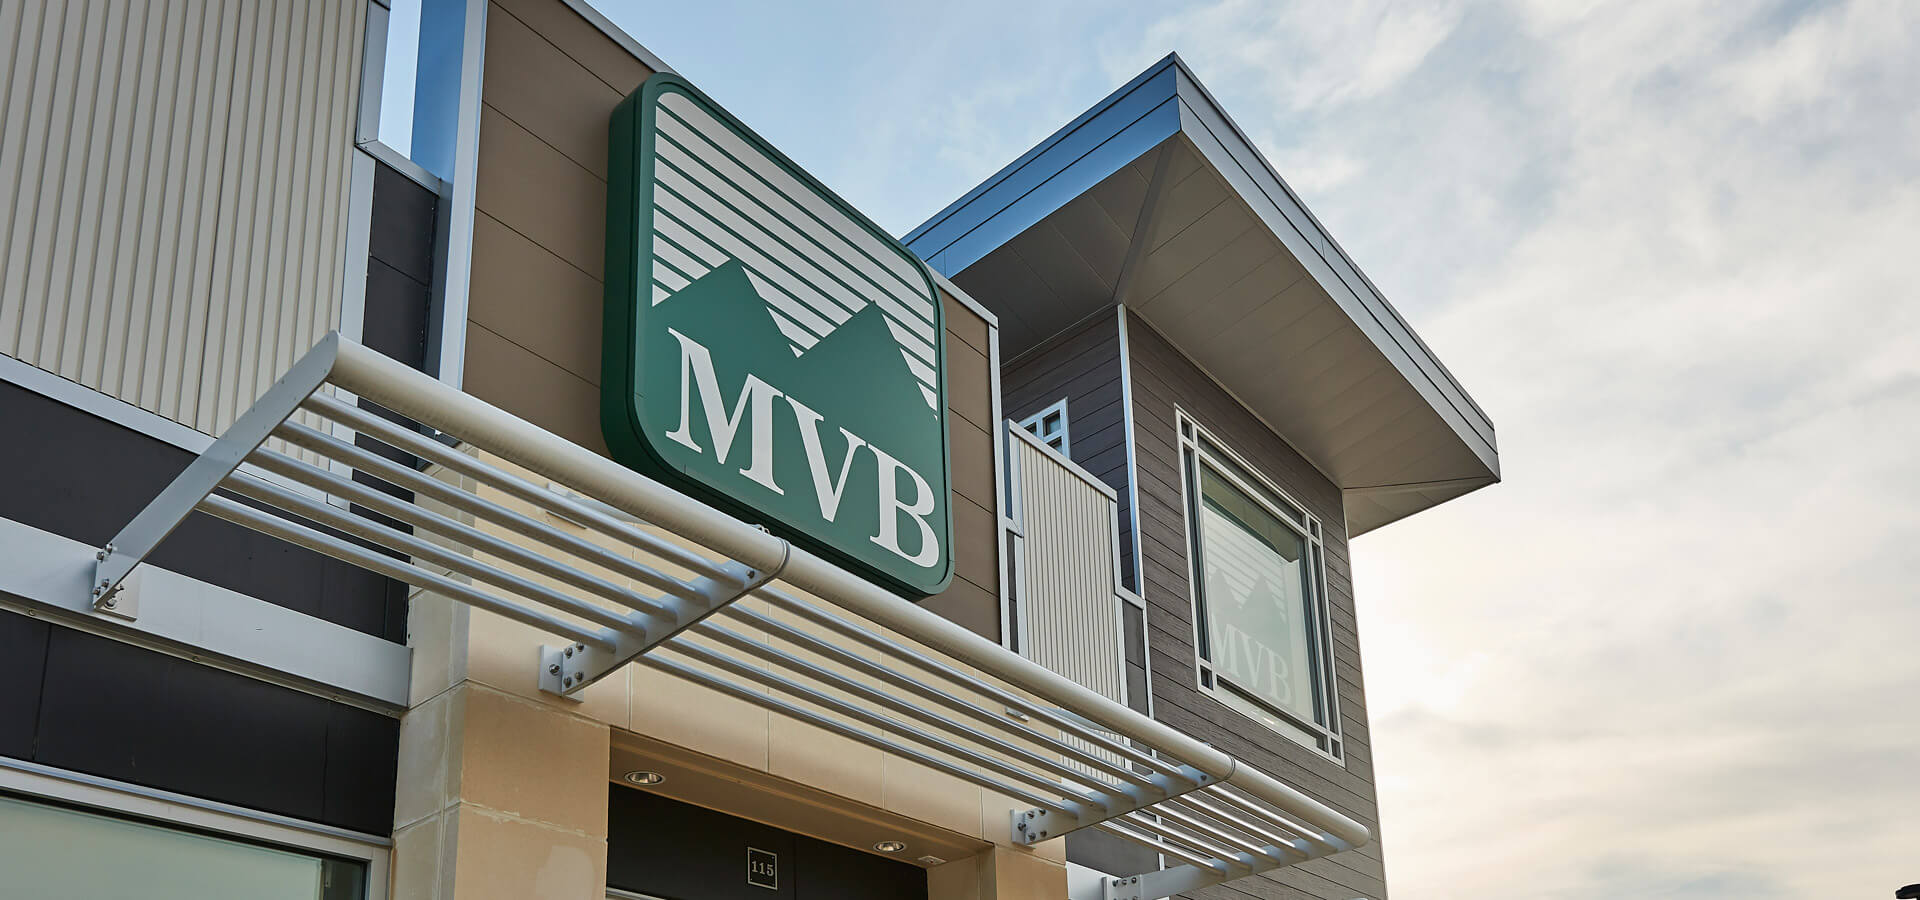 MVB branch outside